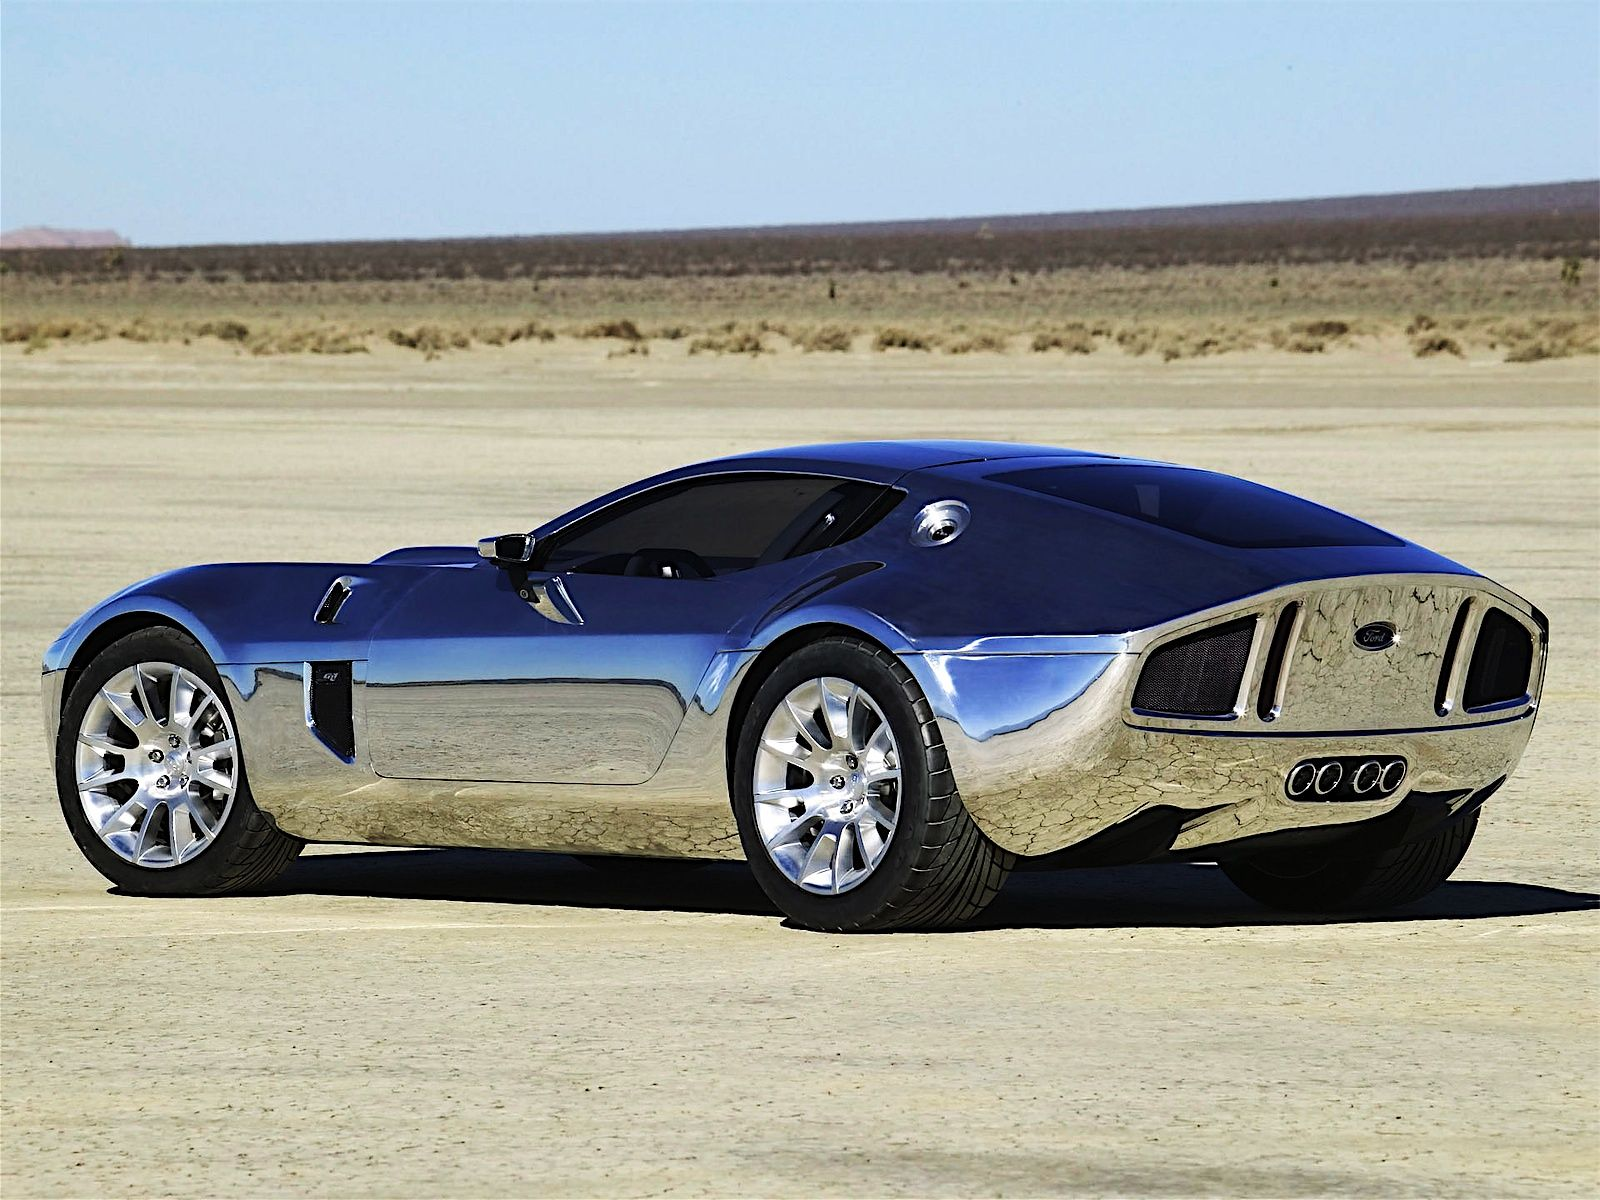 Ford Shelby GR 1 Concept 2005 Ford shelby, Concept cars